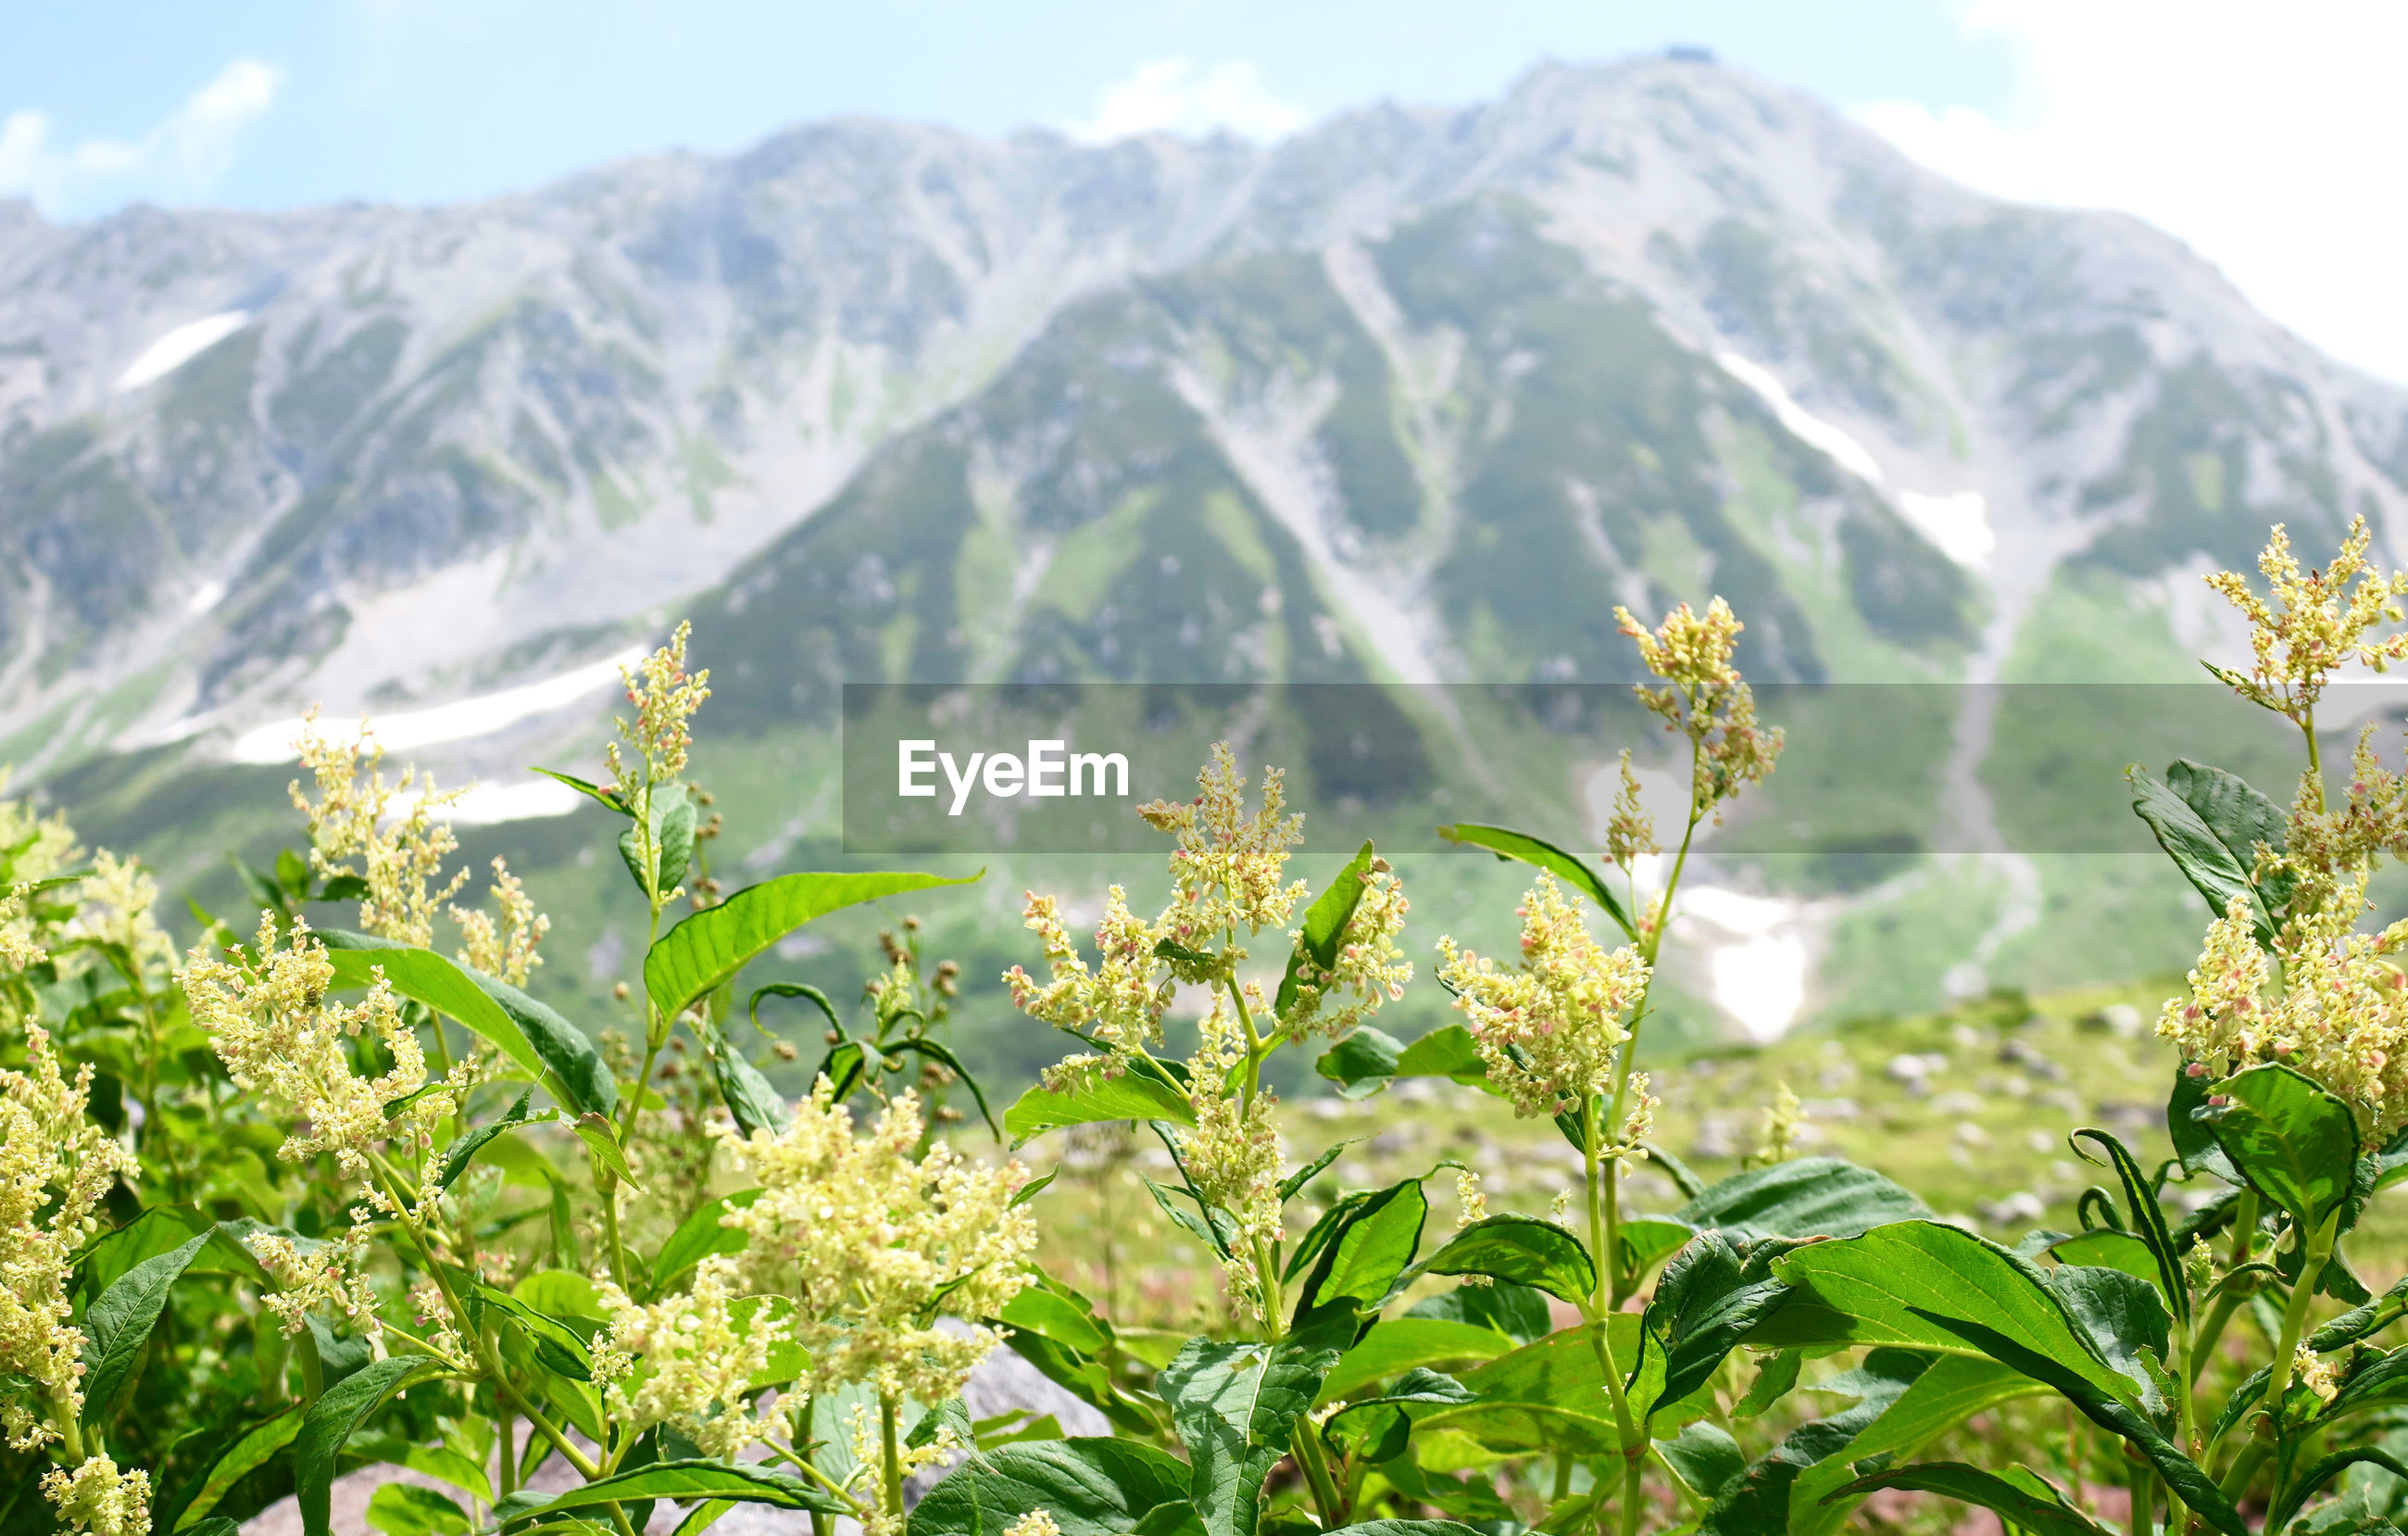 SCENIC VIEW OF MOUNTAINS AGAINST PLANTS